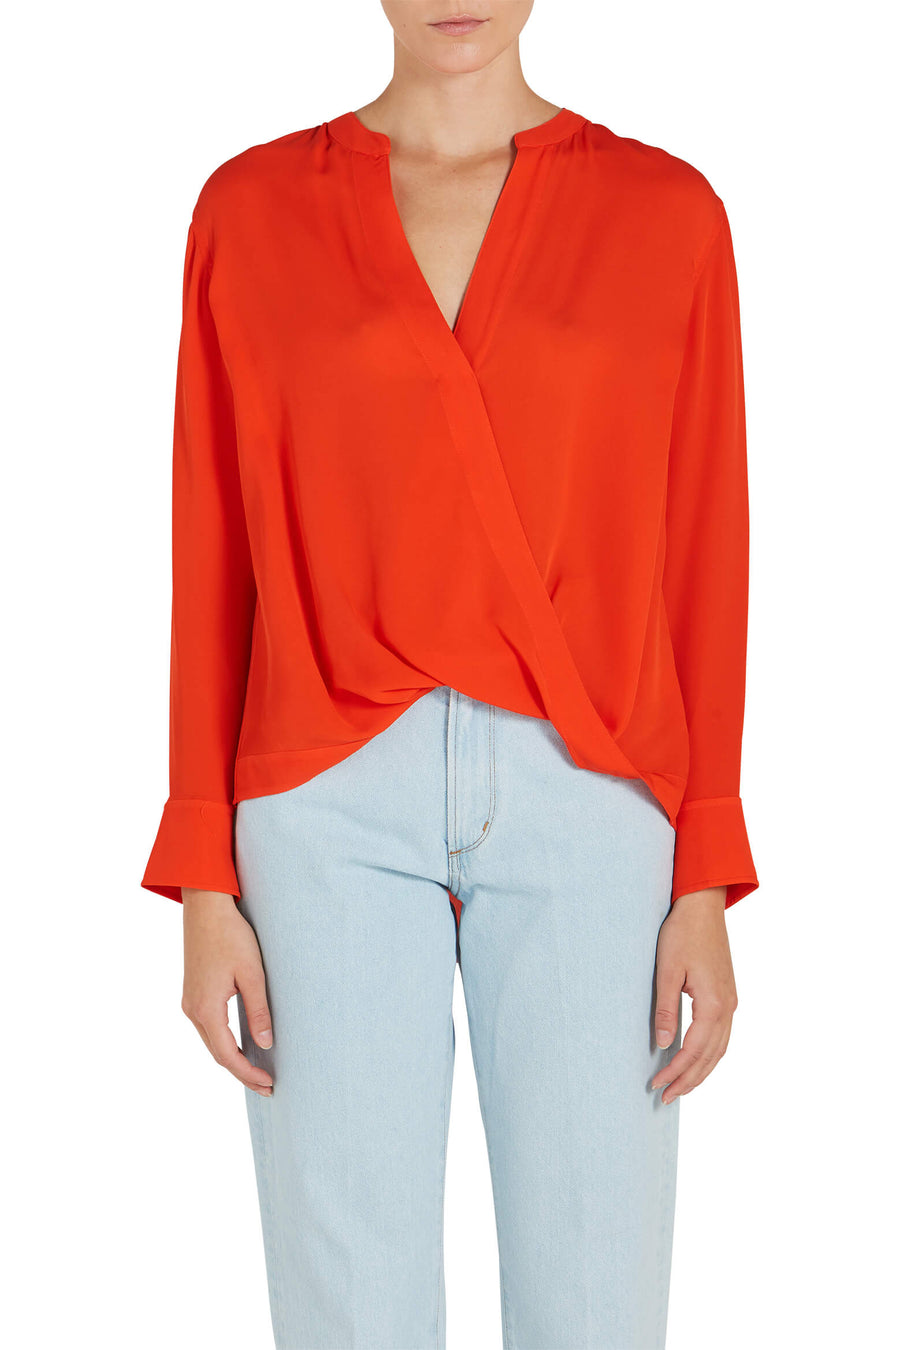 A.L.C Luca Drape Front Top from The New Trend